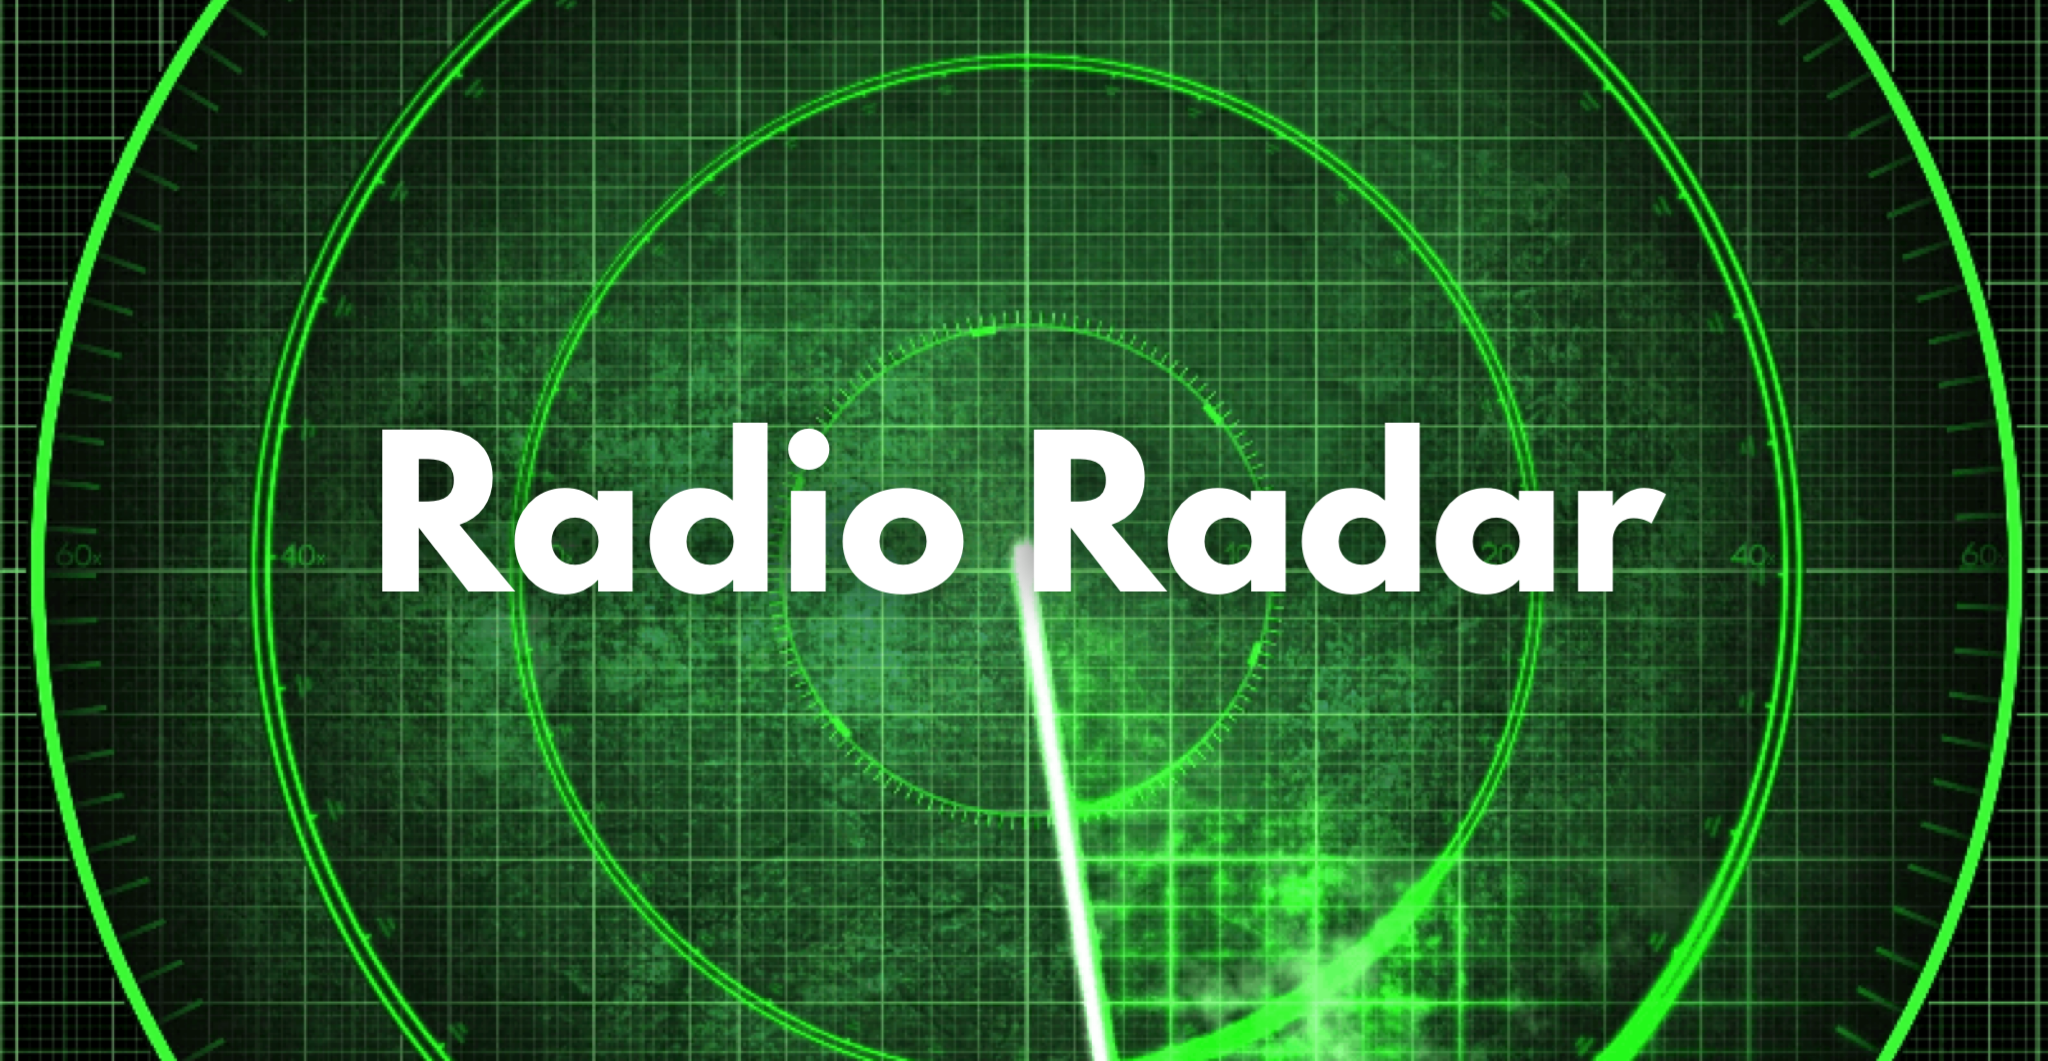 Radio Radar: Five Radio Singles Hitting Five Different Christian Music Charts